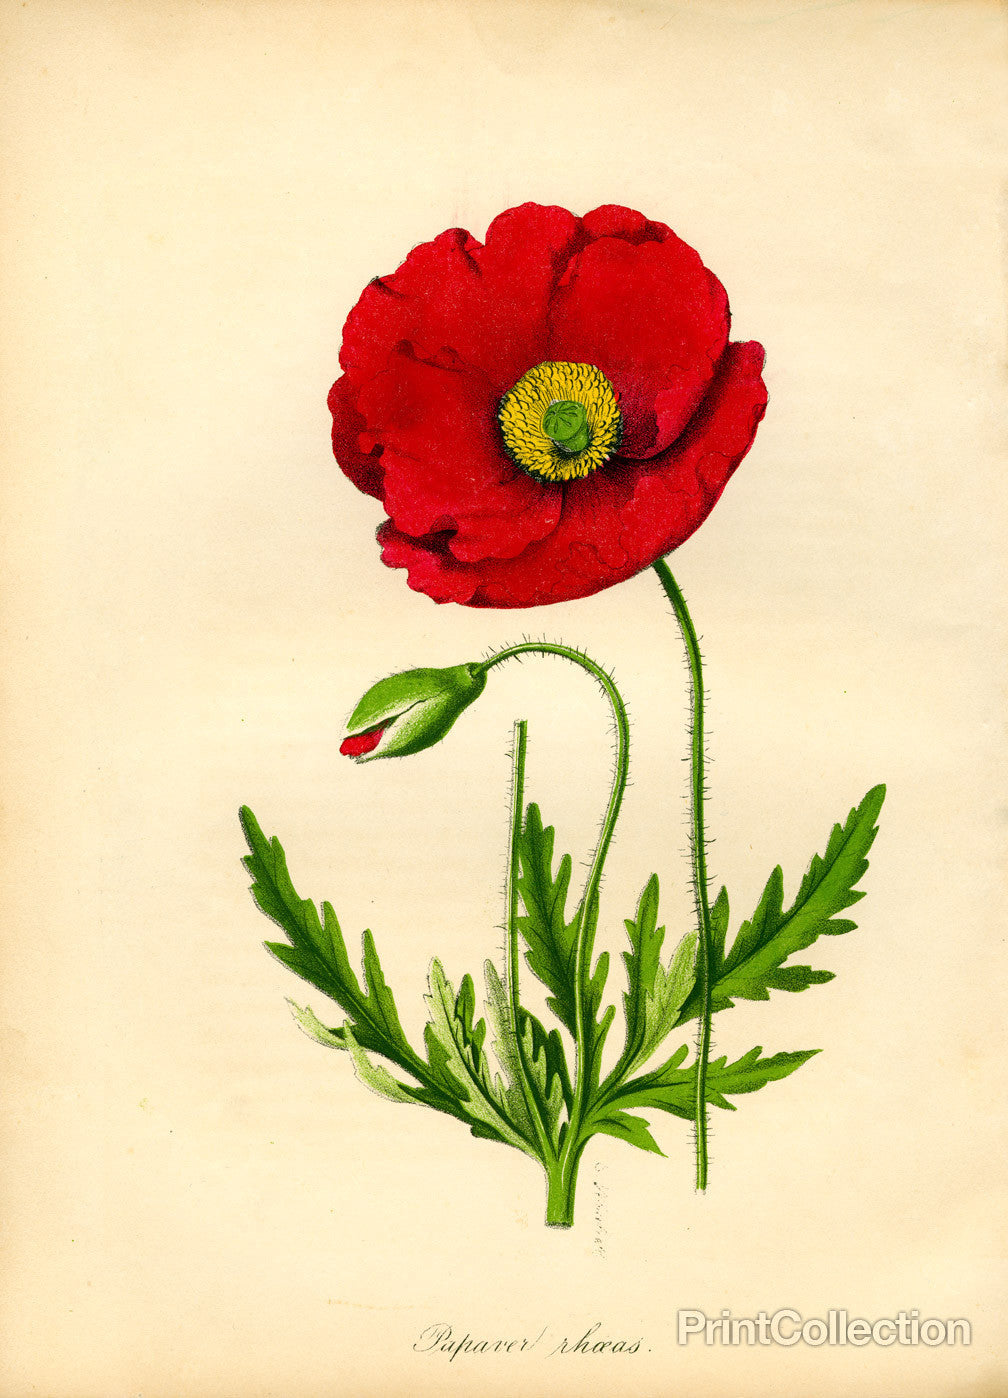 Print Collection - Papaver Rhoeas, Red Poppy